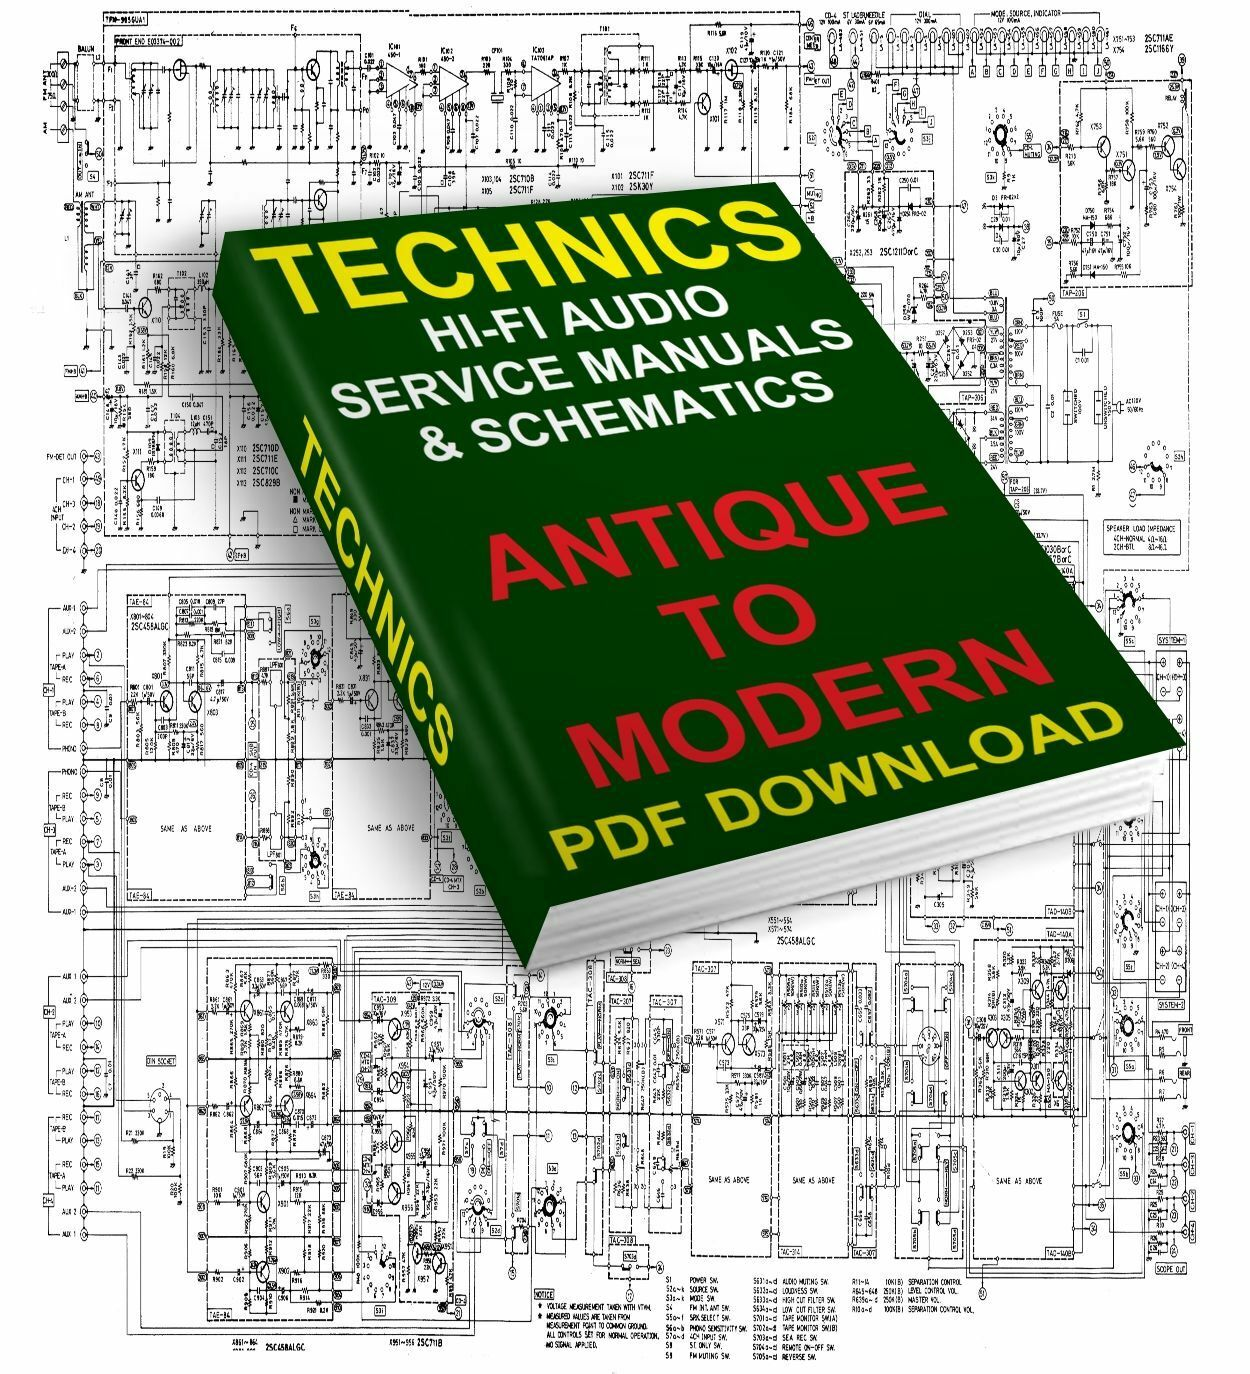 Technics Service Manuals Schematics Antique To Modern Download Lincoln Sa 200 Manual 1 Of 1free Shipping